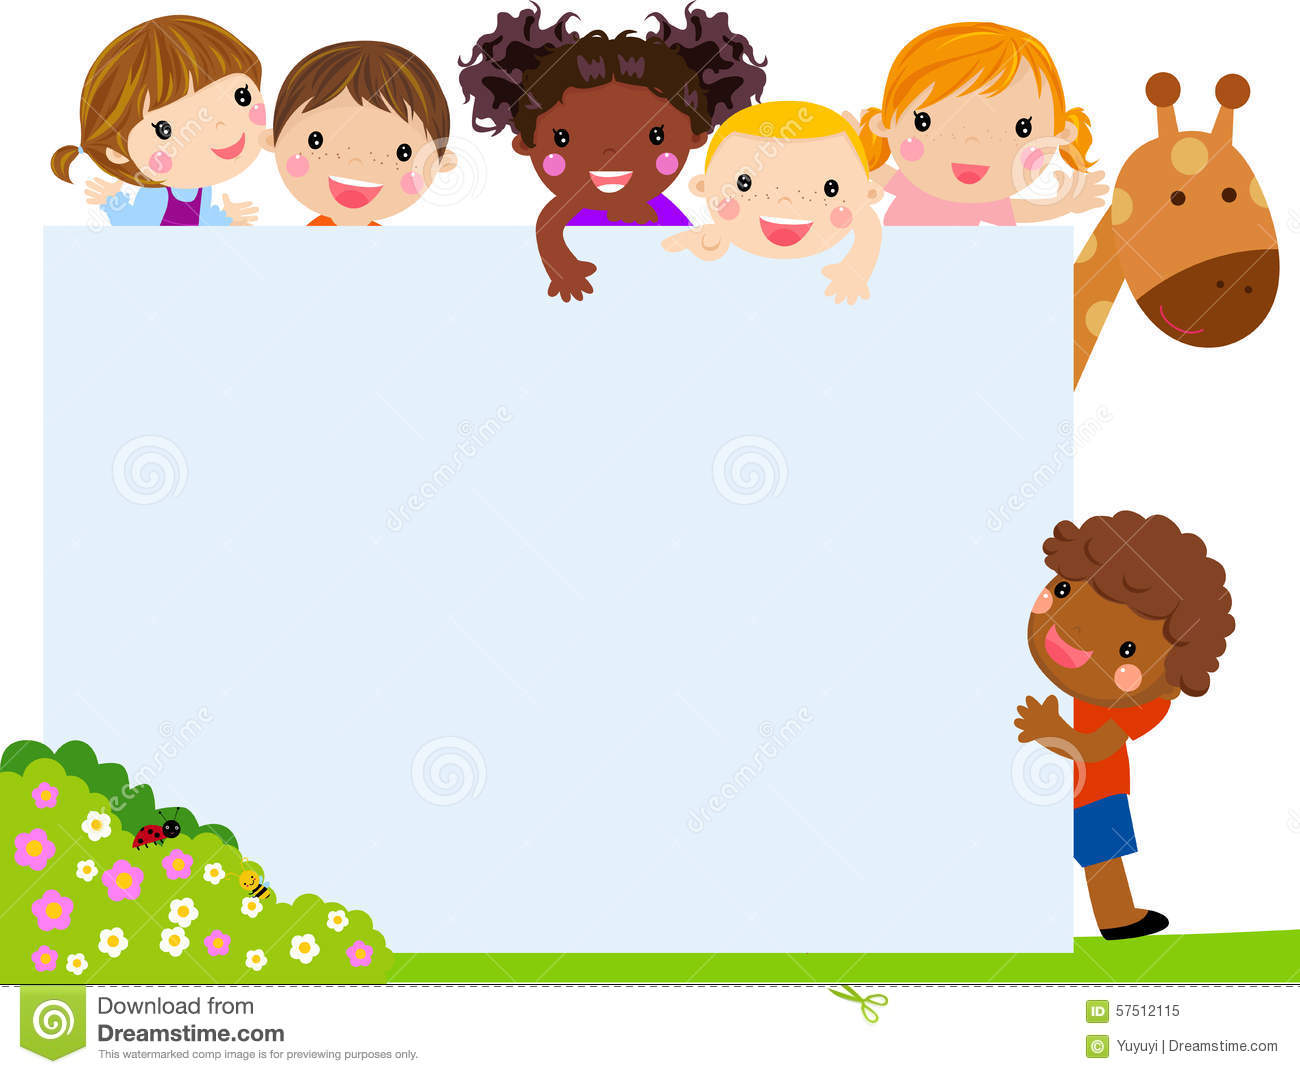 Kids background clipart 13 » Clipart Station.